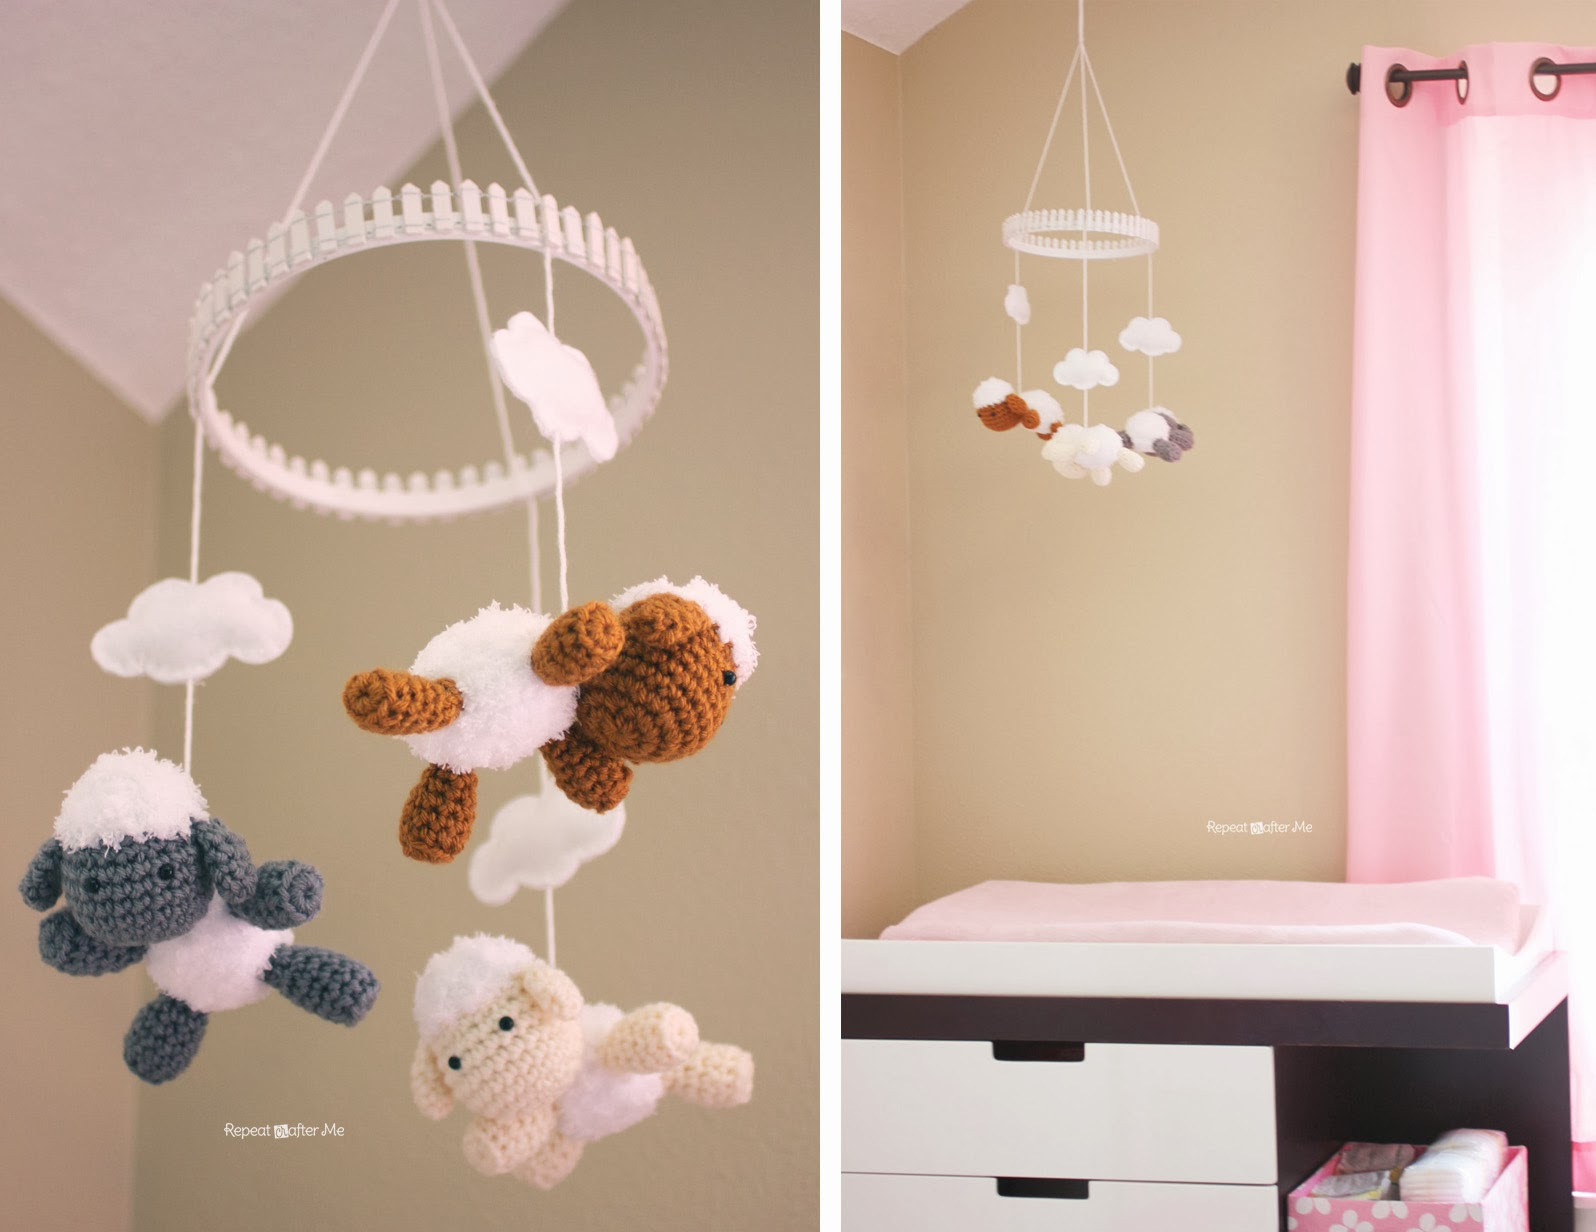 Best ideas about DIY Baby Decor . Save or Pin Baby Girl Nursery DIY decorating ideas Repeat Crafter Me Now.